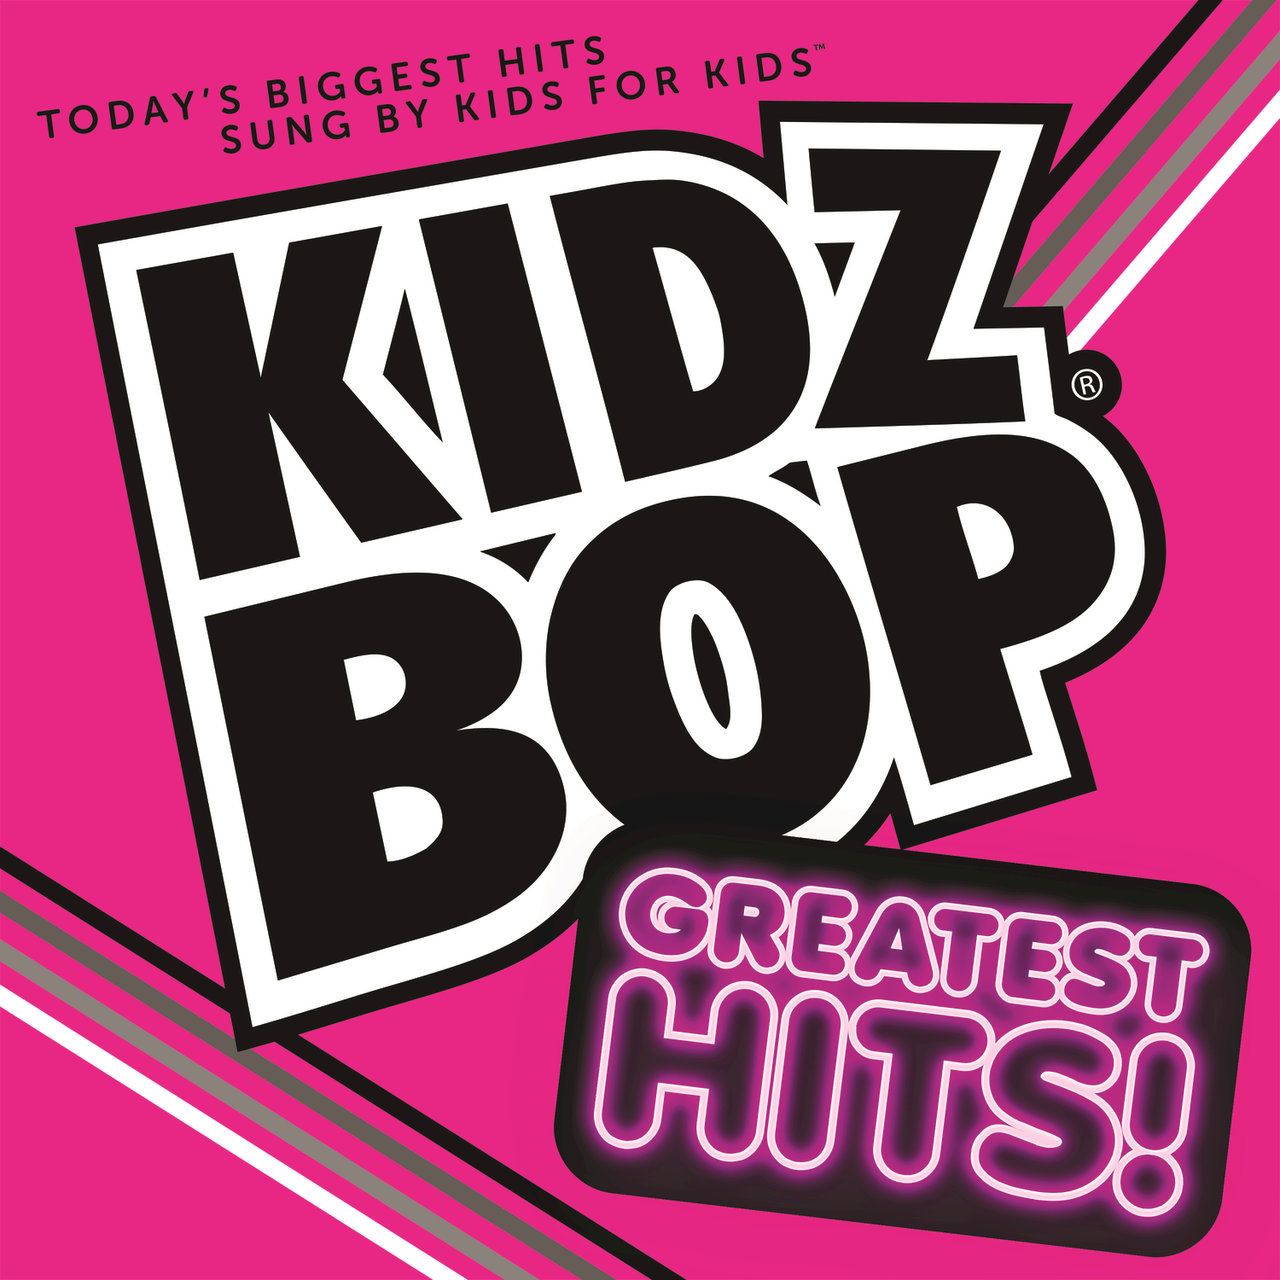 Kidz bop clipart clip art freeuse download KIDZ BOP | KIDZ BOP Greatest Hits | KIDZ BOP clip art freeuse download